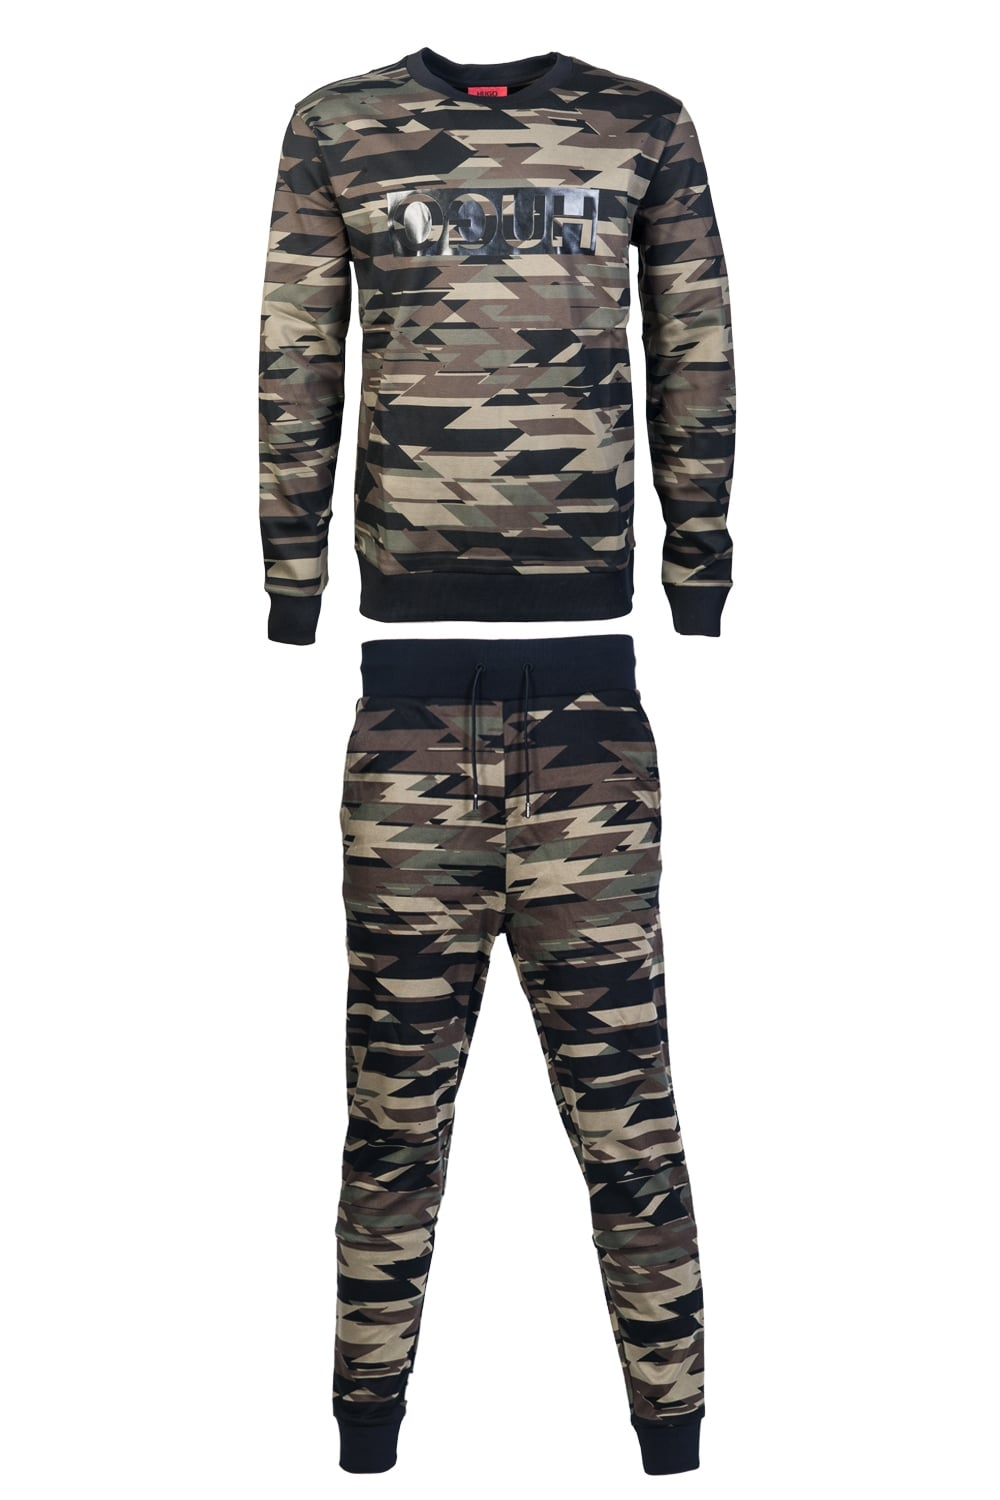 Hugo Boss Driggs Tracksuit Camouflage and Black